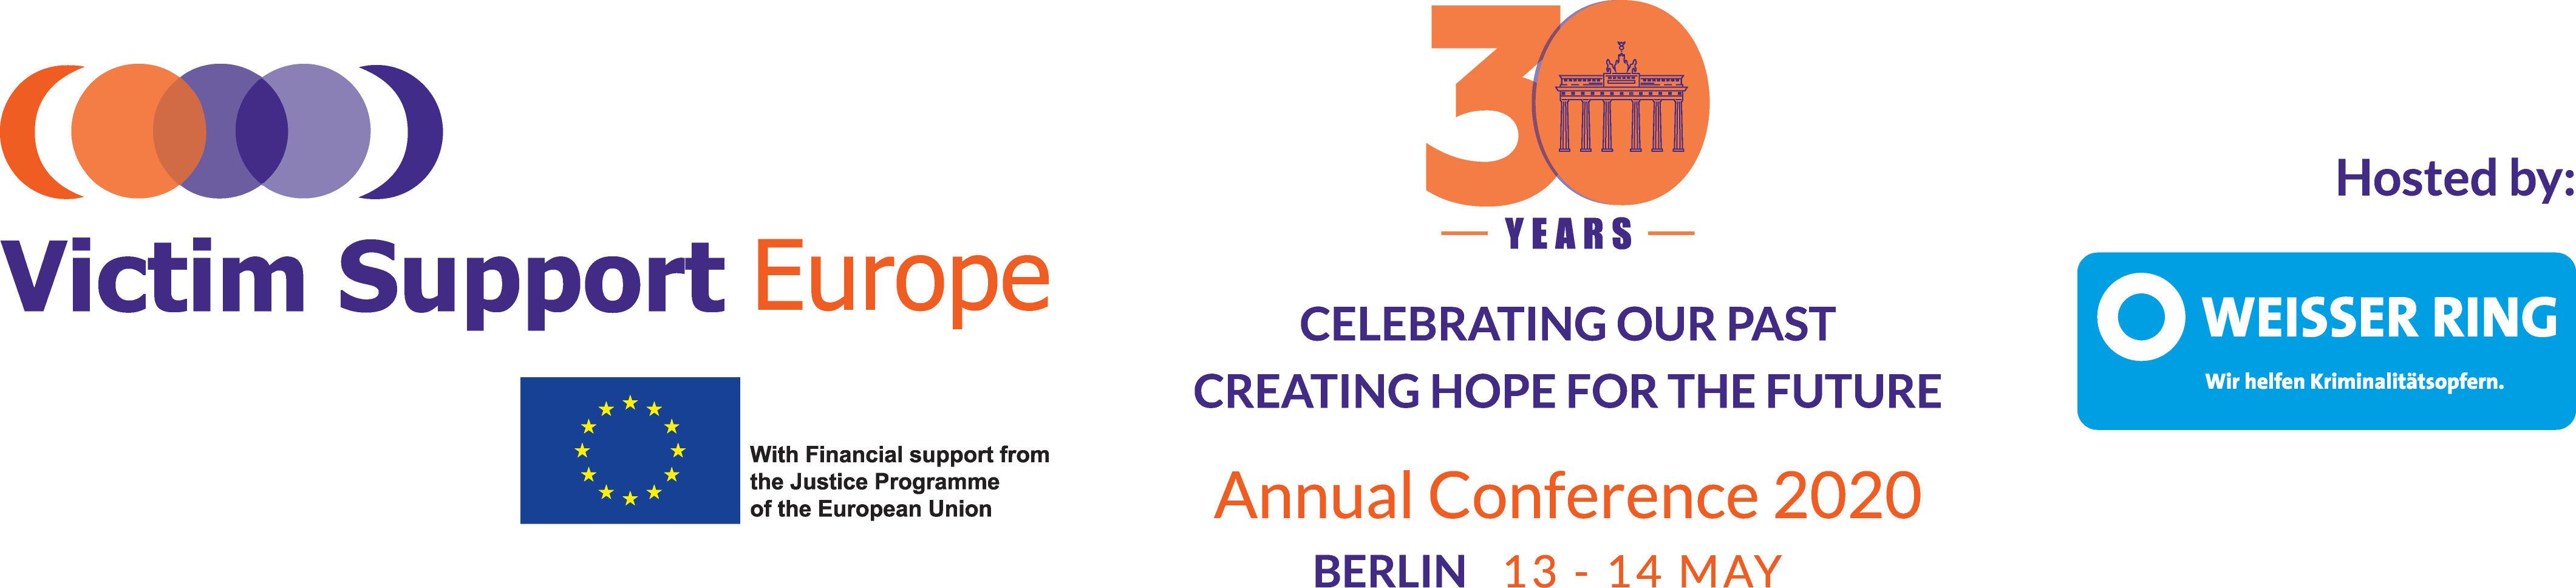 VSE Berlin 2020 - Celebrating Our Past. Creating Hope For The Future.